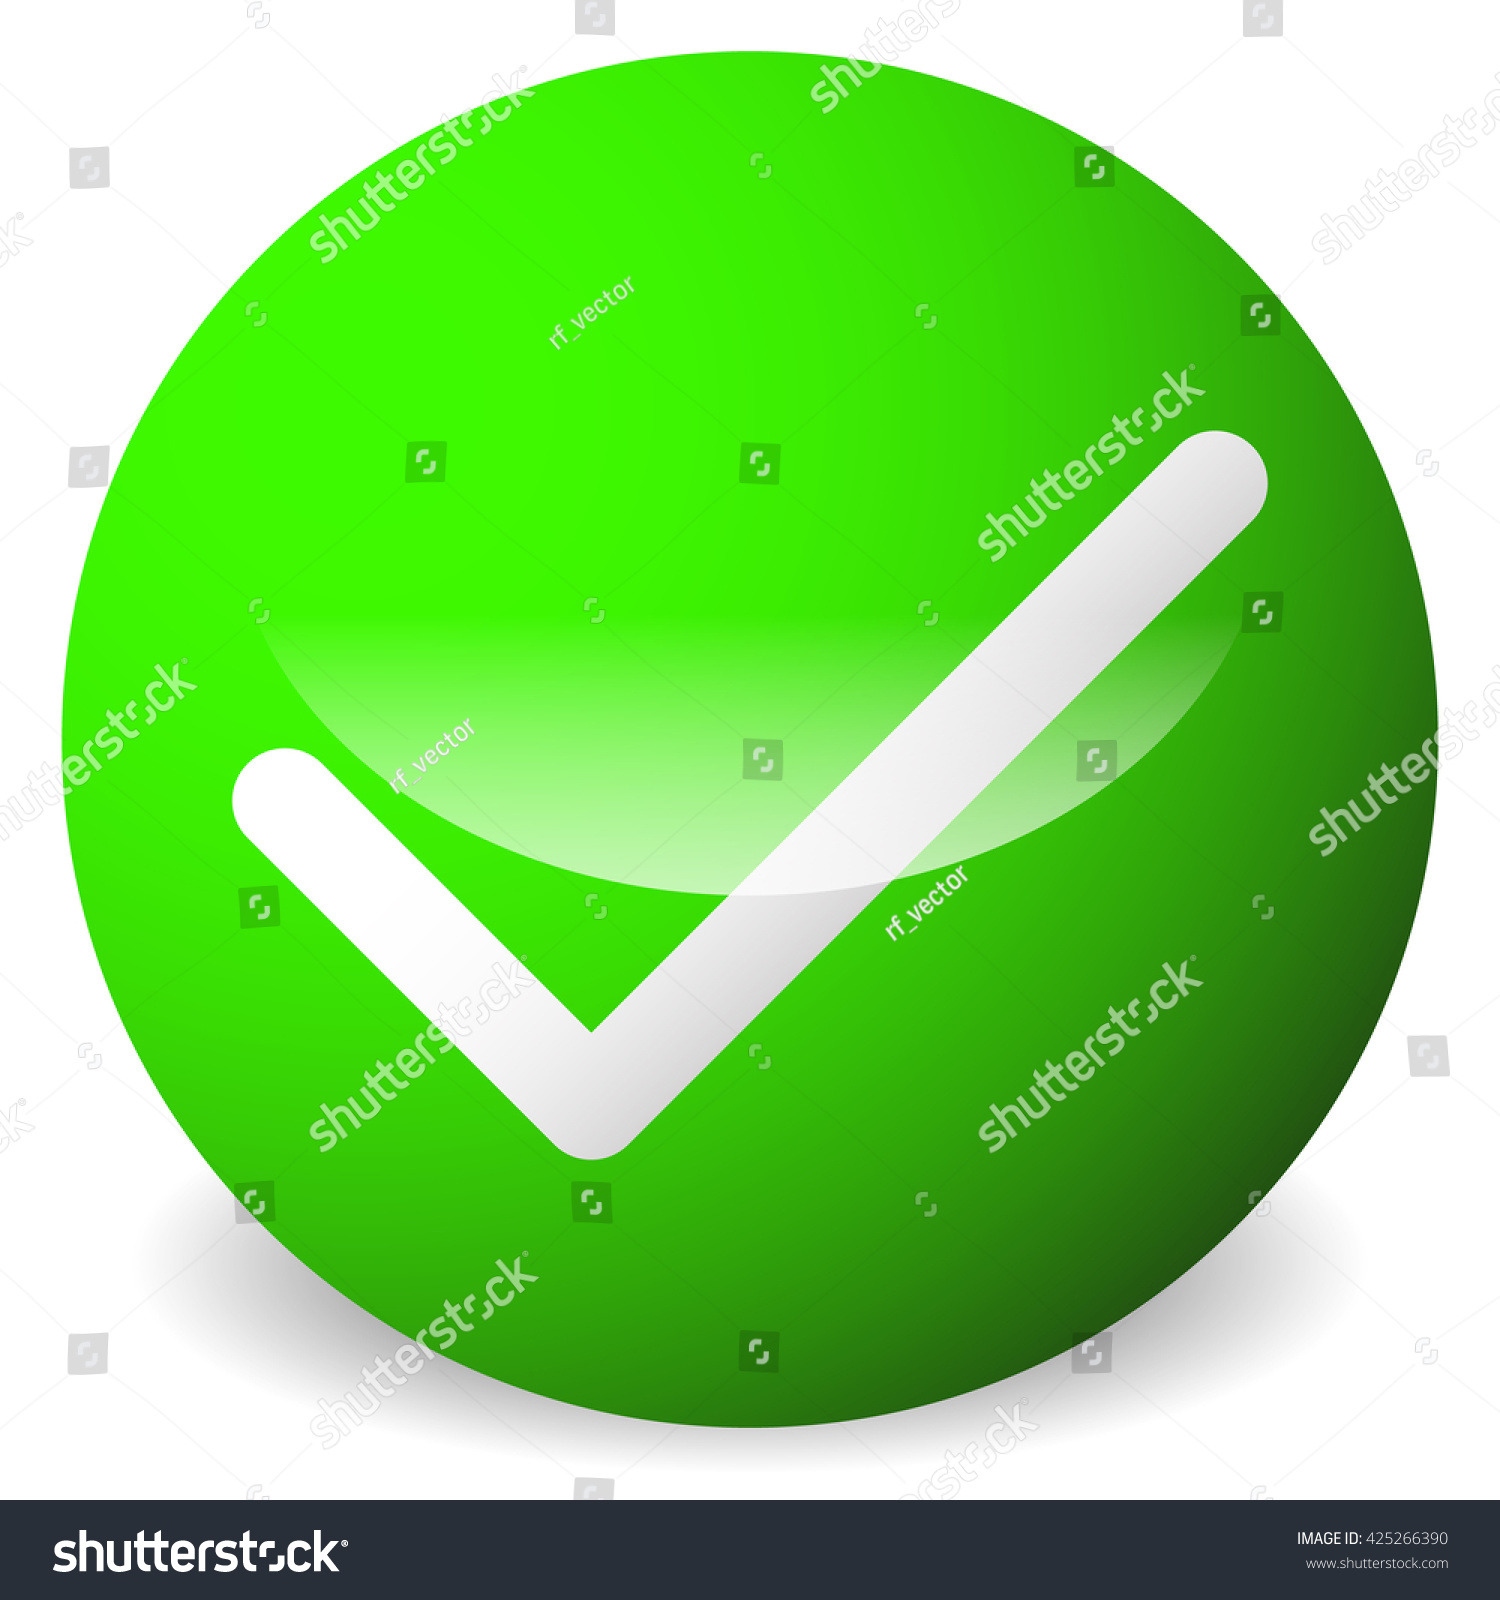 Royalty Free Stock Illustration Of Circle Tick Check Mark Symbol